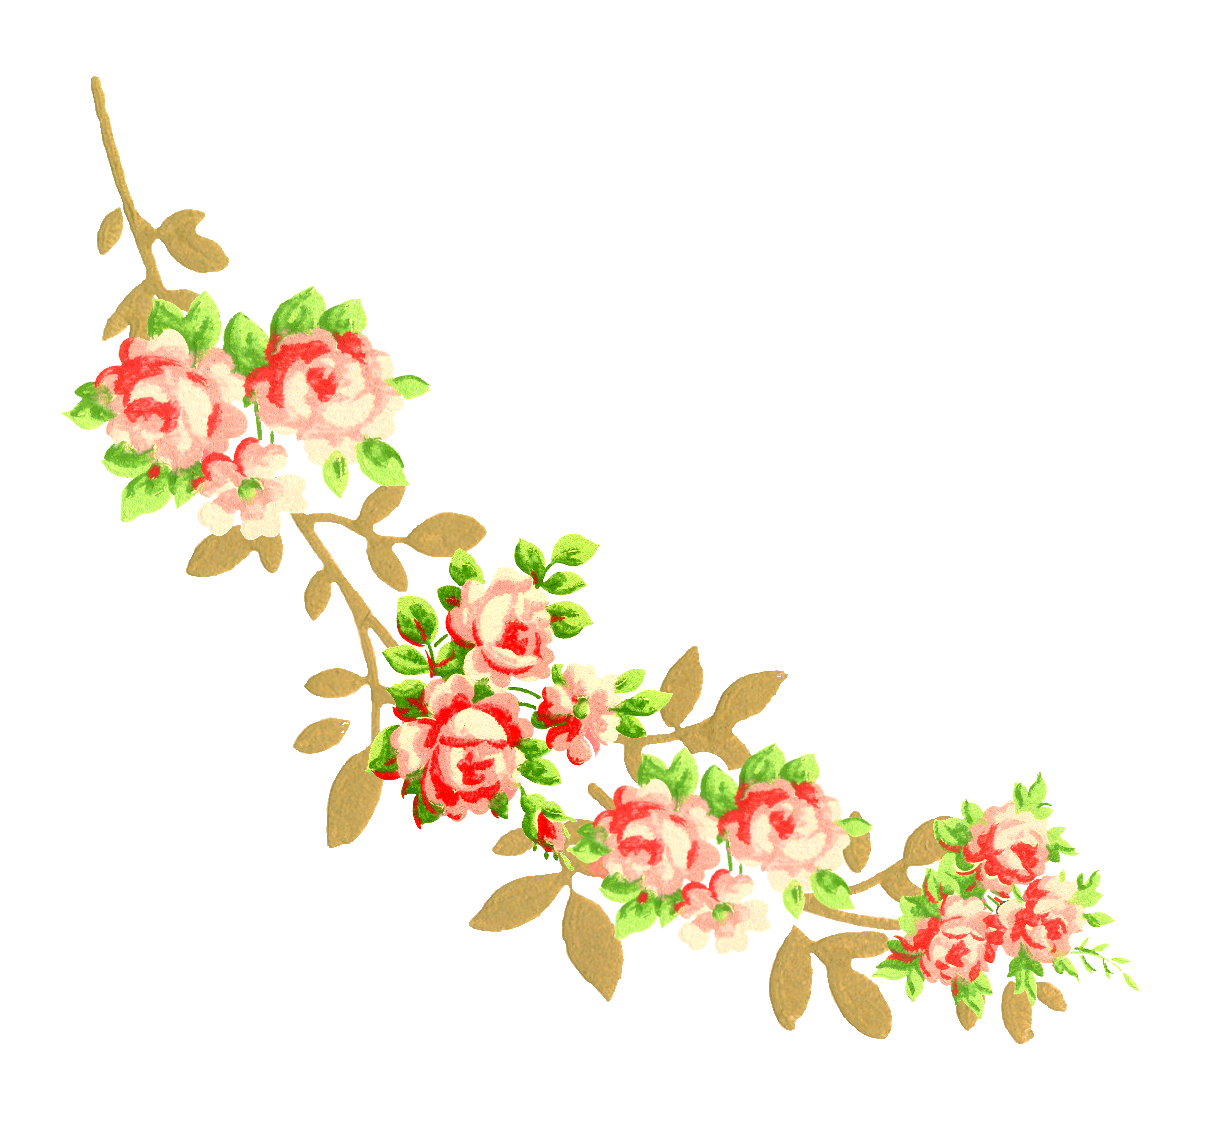 Flower corner design png. The graphics monarch baby